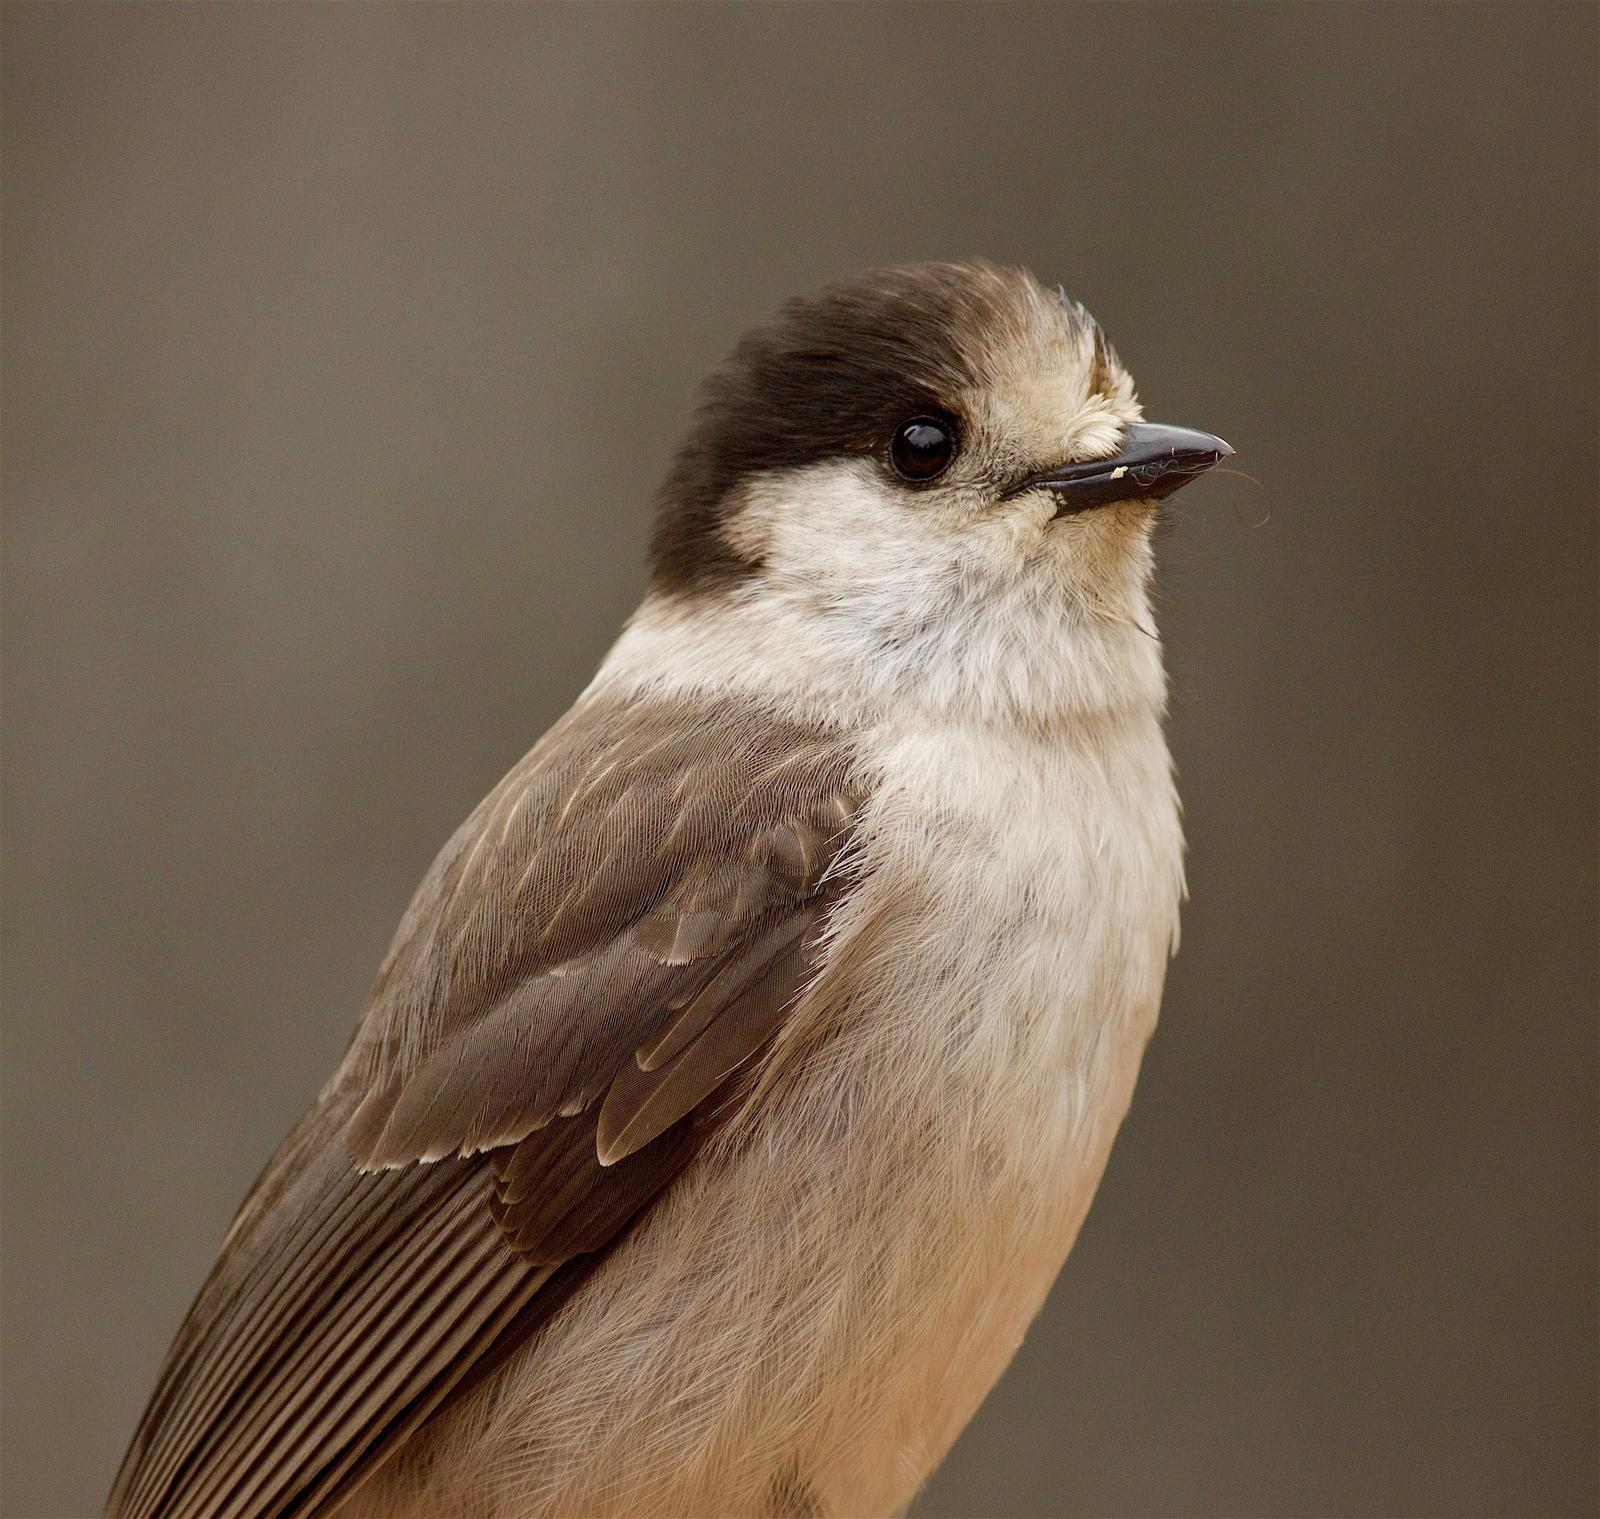 Canada Jay (Pacific) Photo by Kathryn Keith